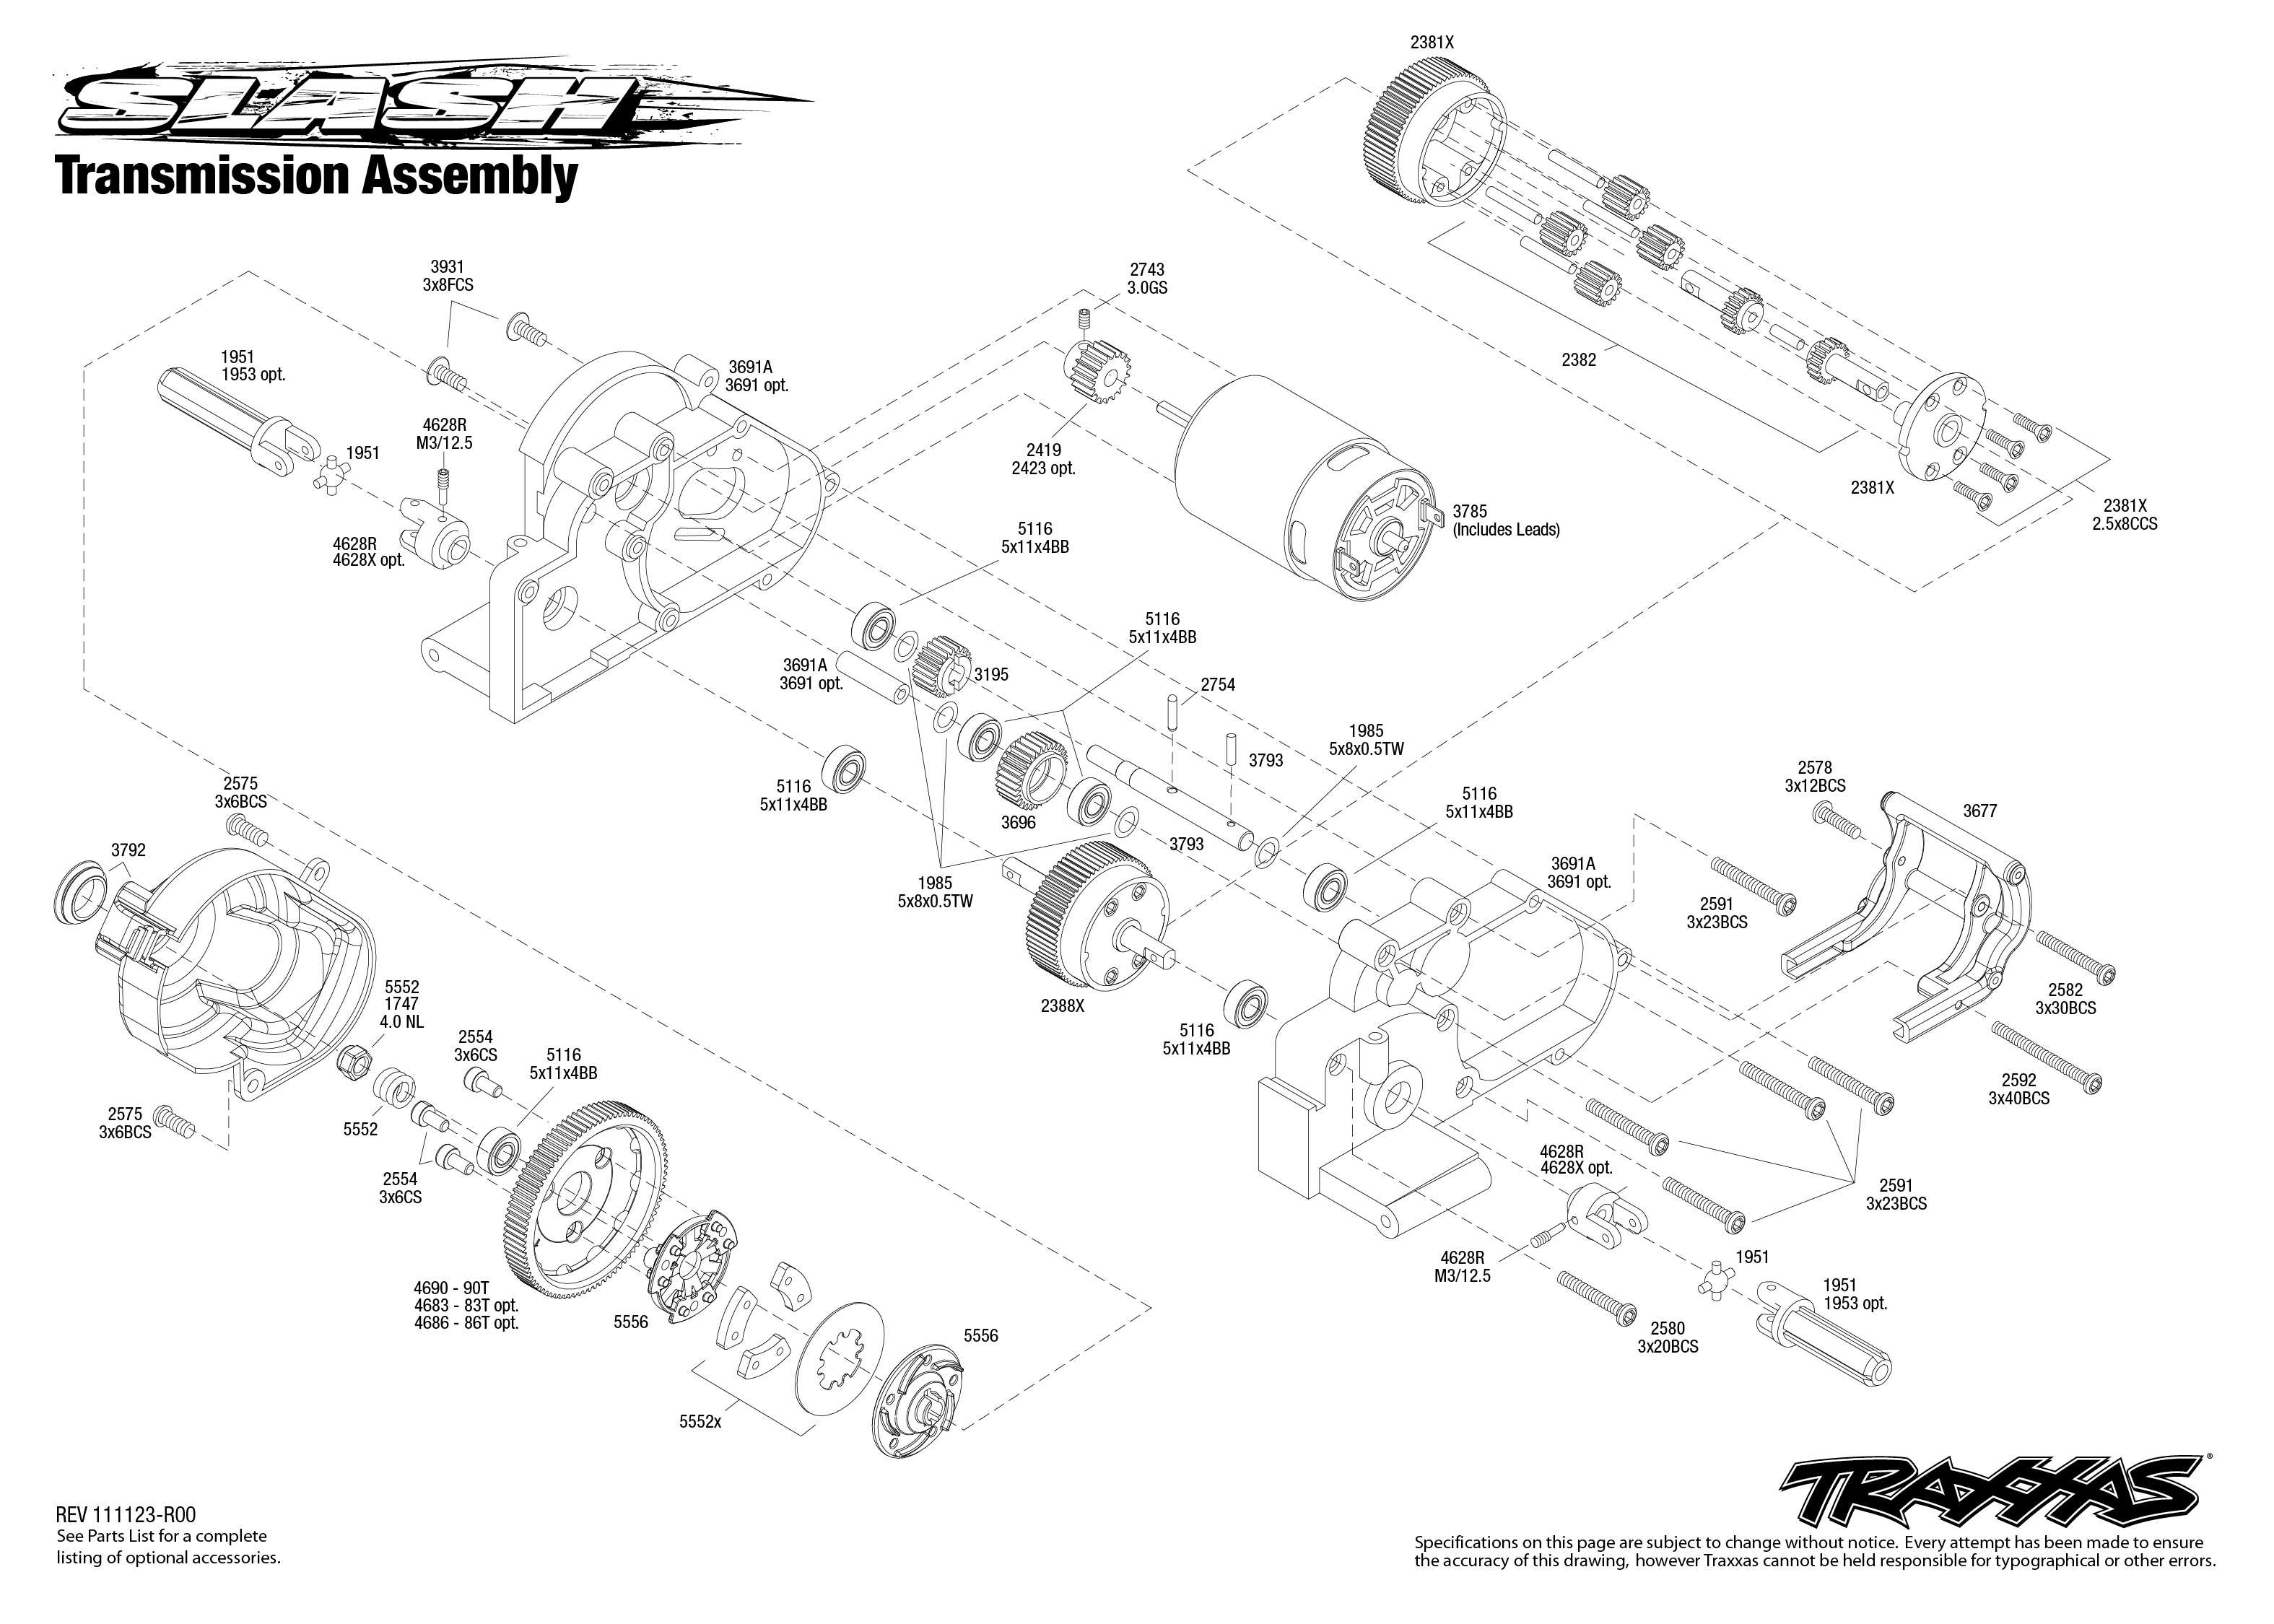 Traxxas Slash Transmission Assembly